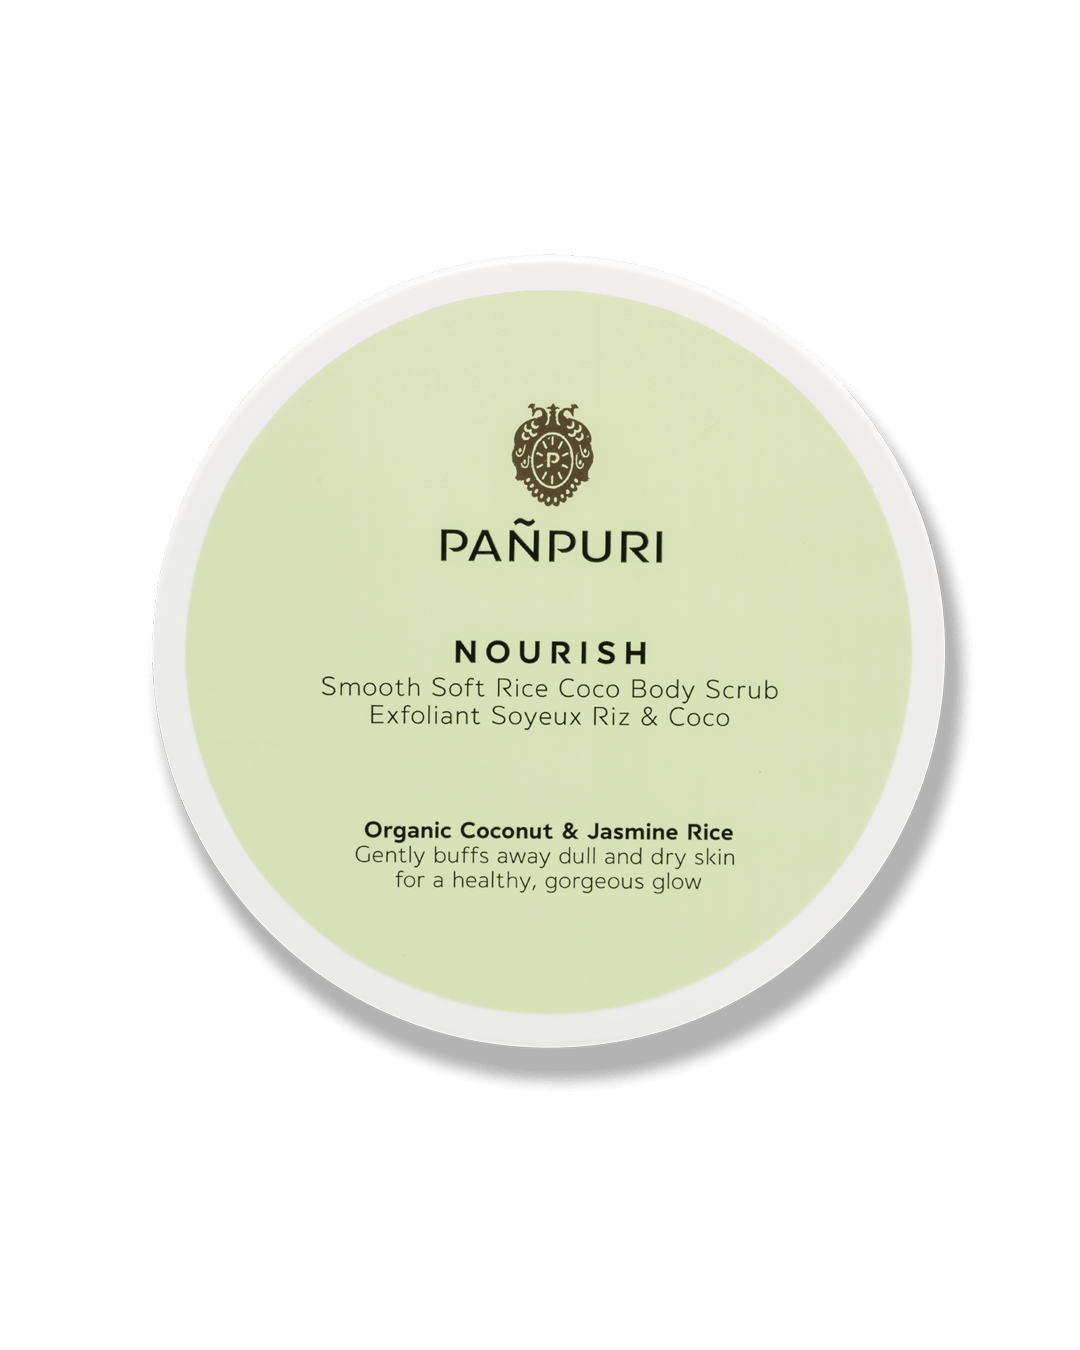 Nourish Smooth Soft Rice Coco Body Scrub